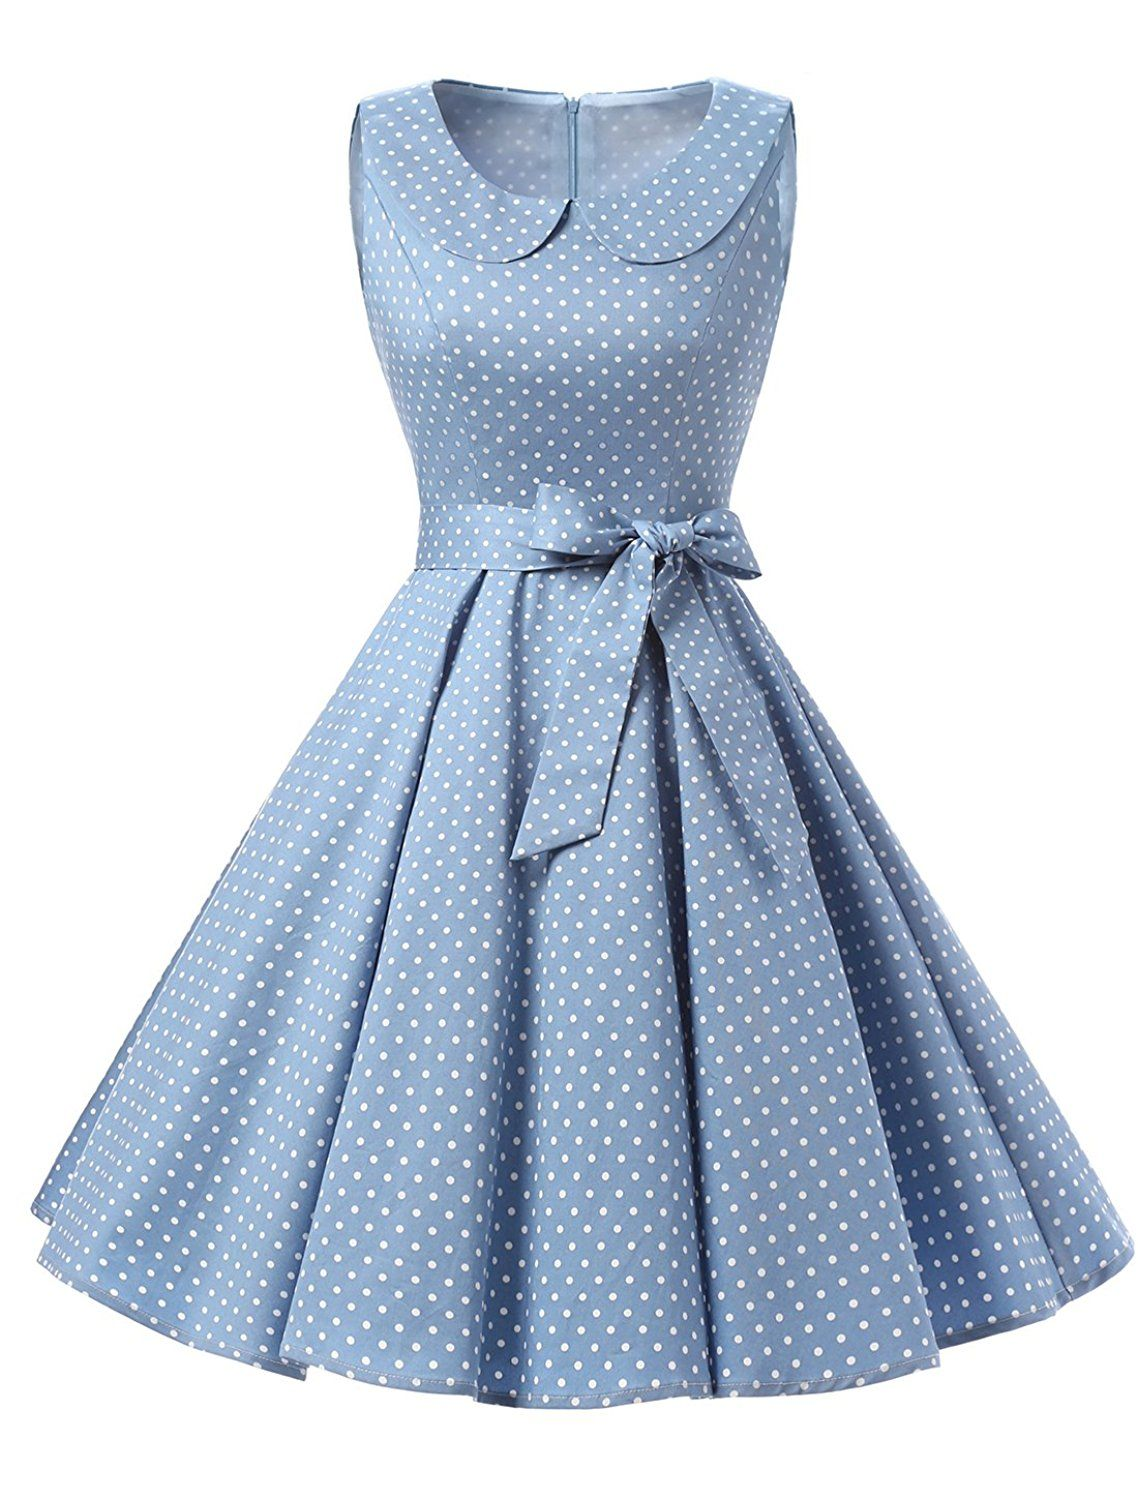 a20ebb62393 TideClothes Vintage 1950s Lapel Polka Dots Rockabilly Dress Party Cocktail  Dress   Remarkable product available now.   Dresses for Christmas